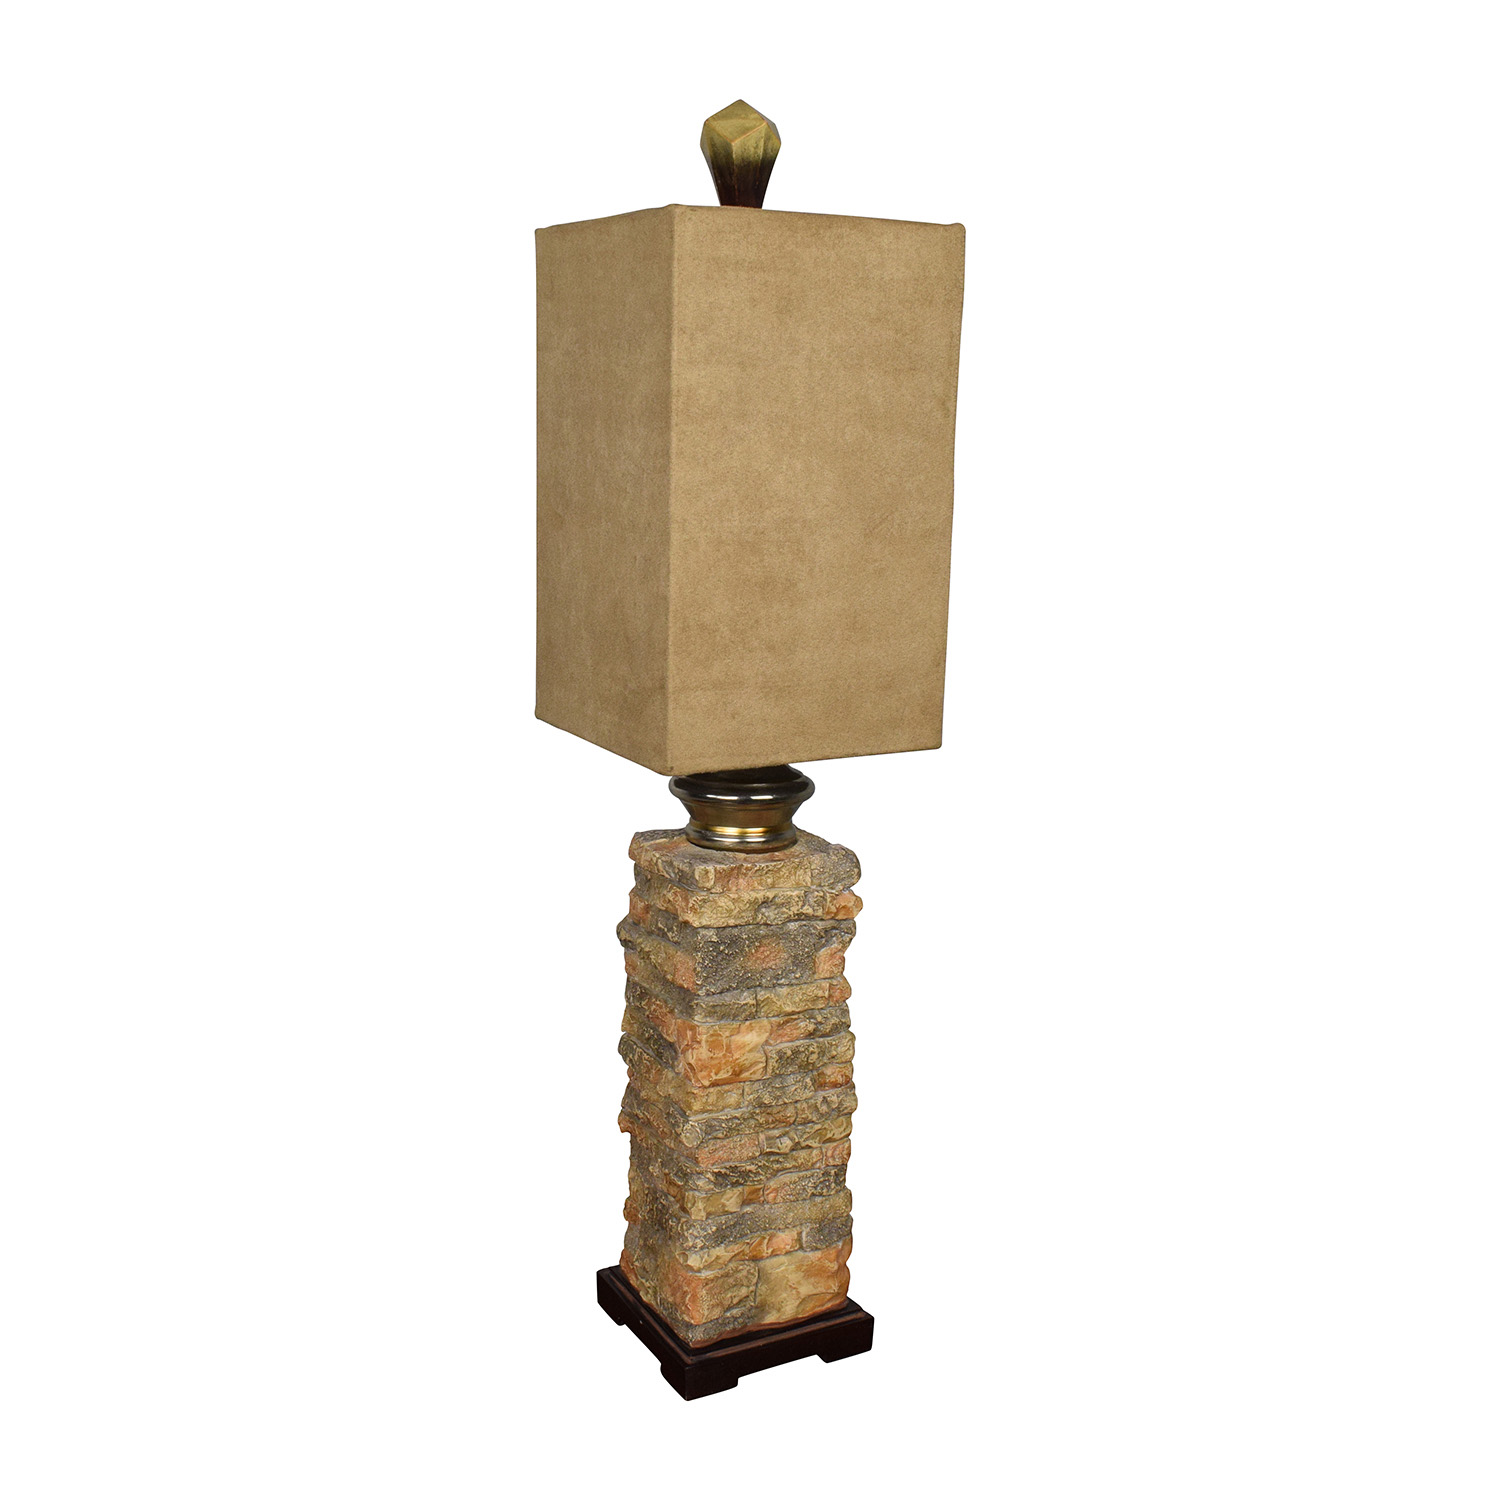 Uttermost Uttermost Andean Stone Finish Table Lamp price